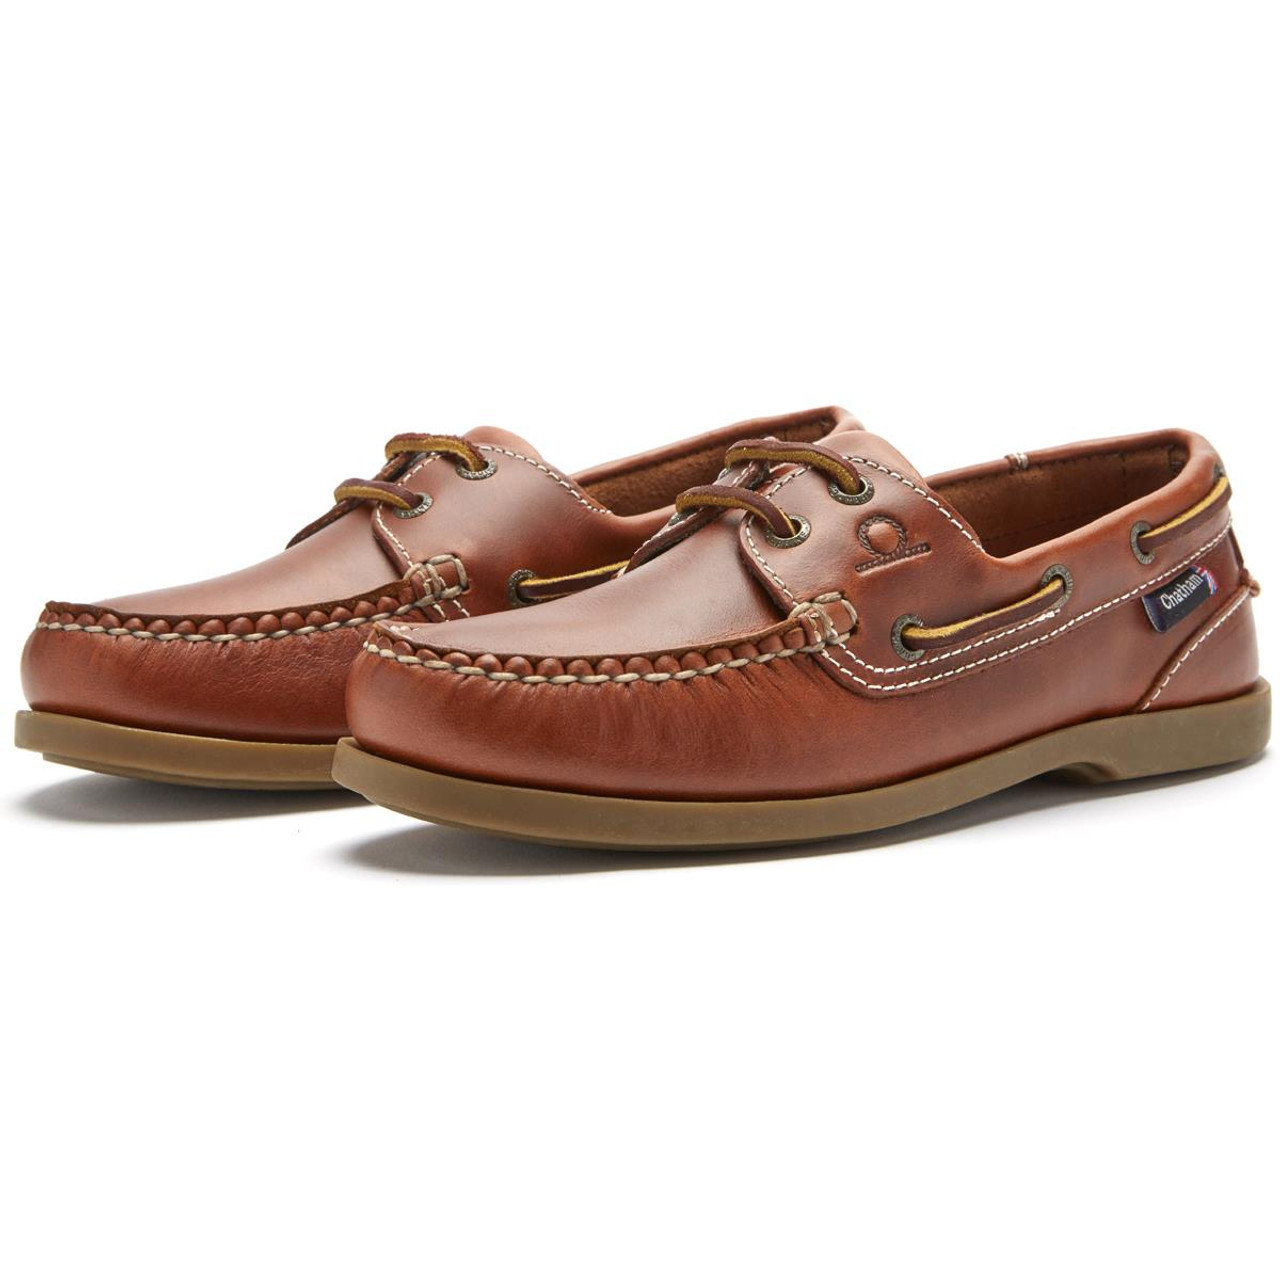 Chatham Womens Deck G2 Boat Shoes